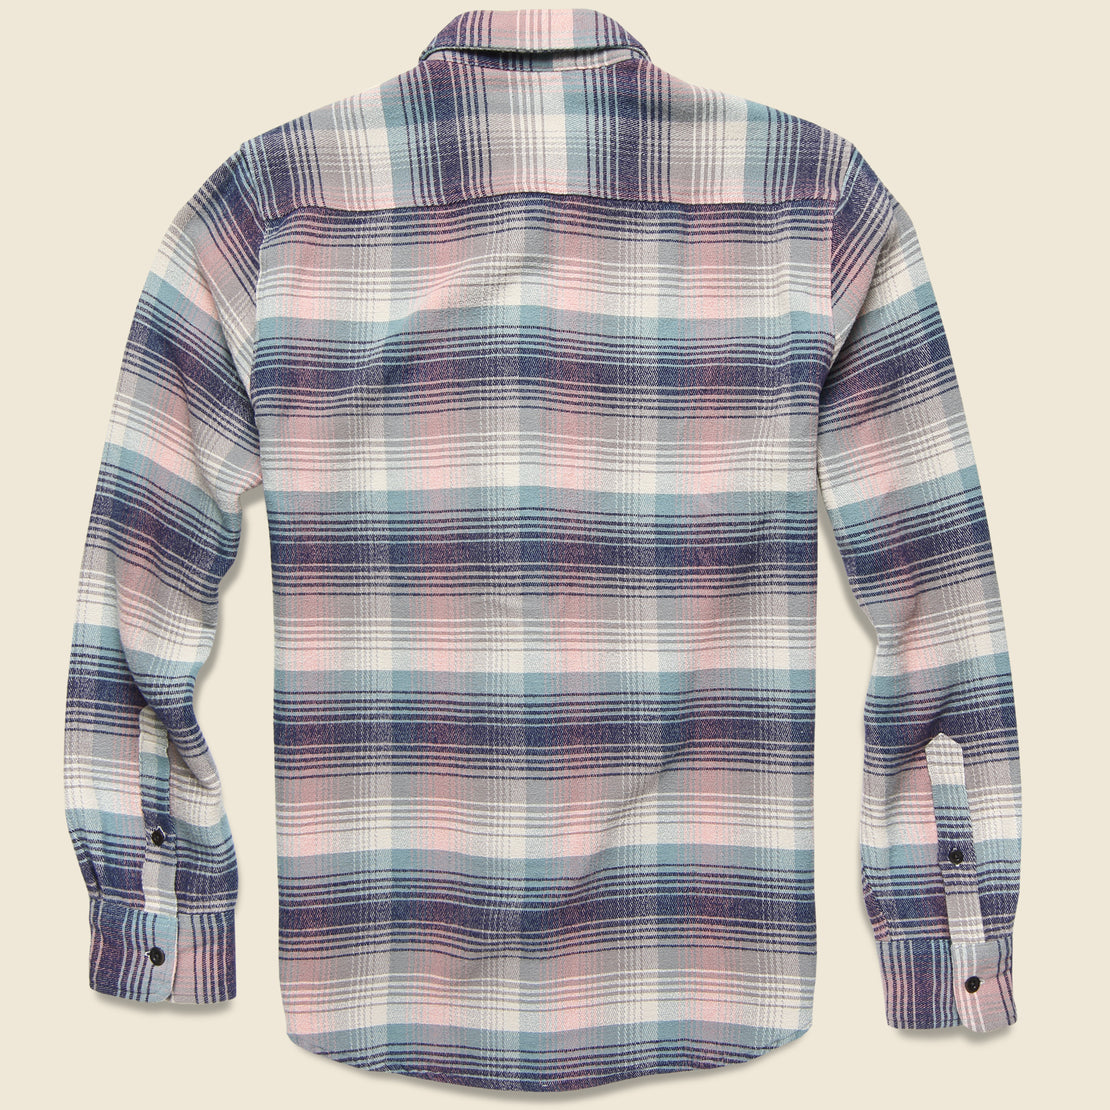 Belmar Shirt - Old Coast Serape